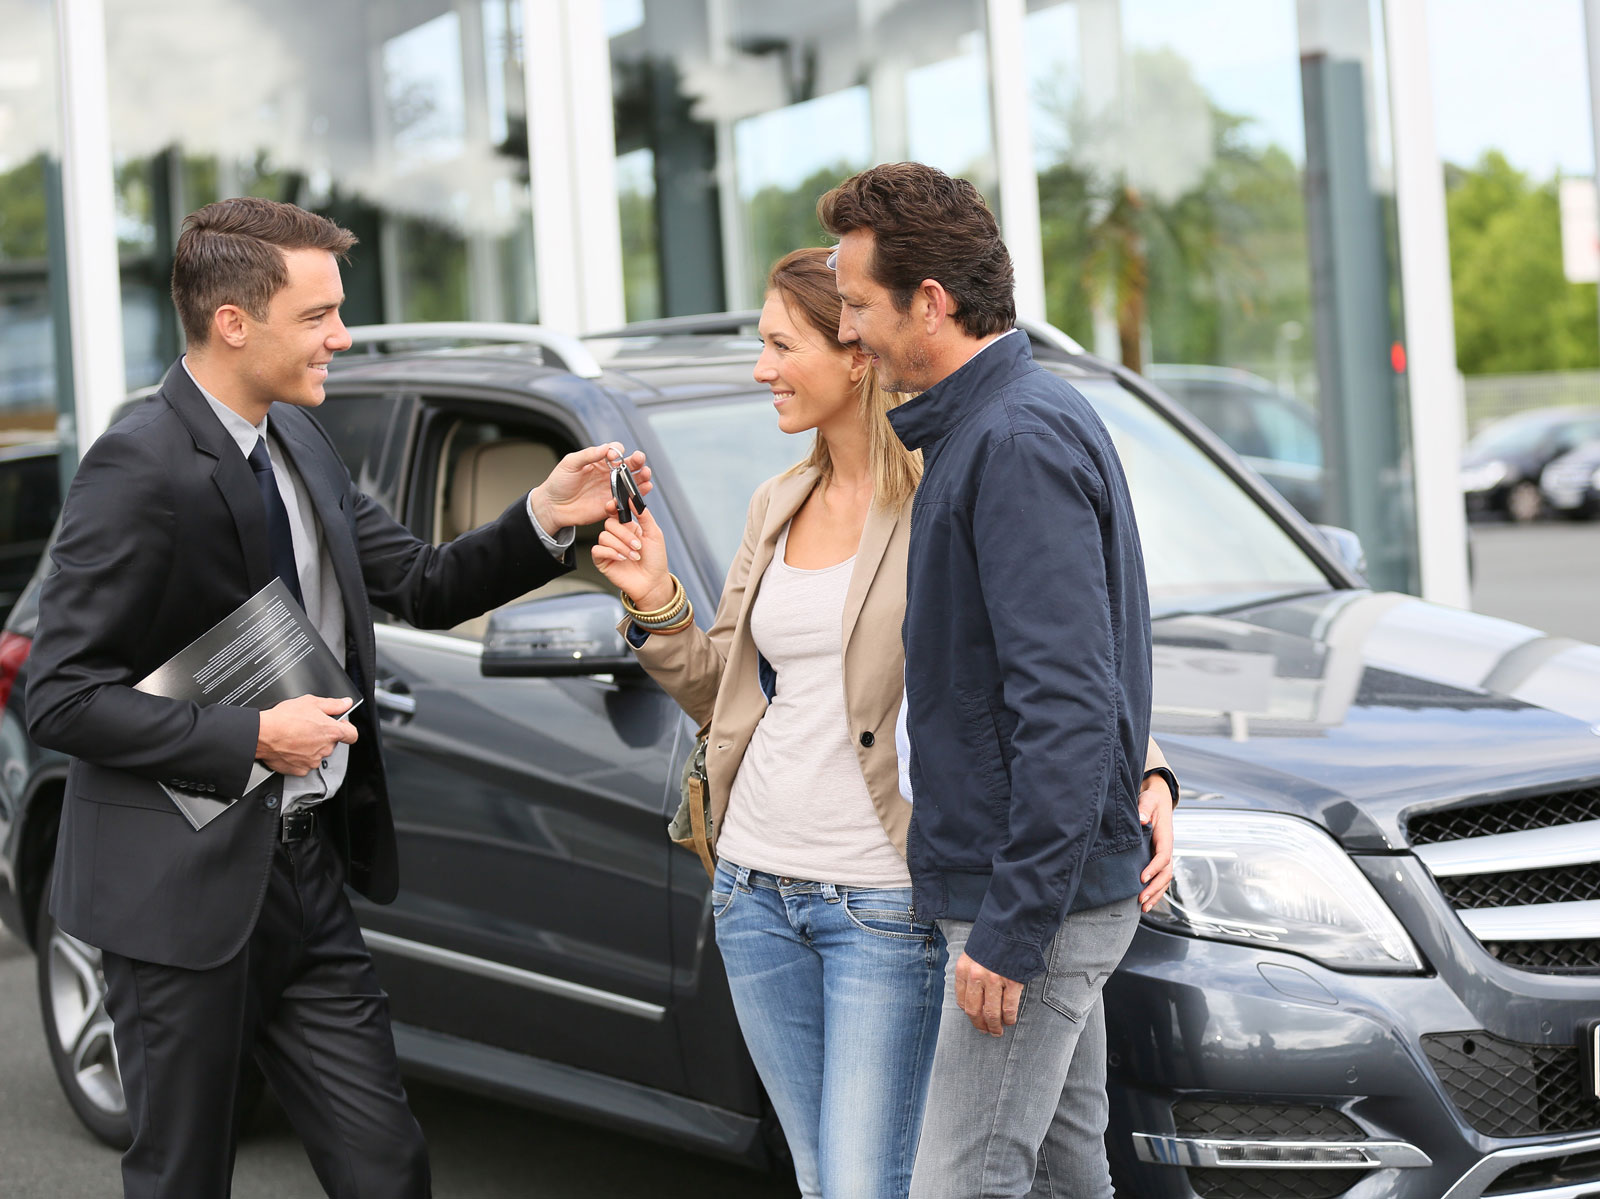 Image showing salesman handing keys of new car to happy clients